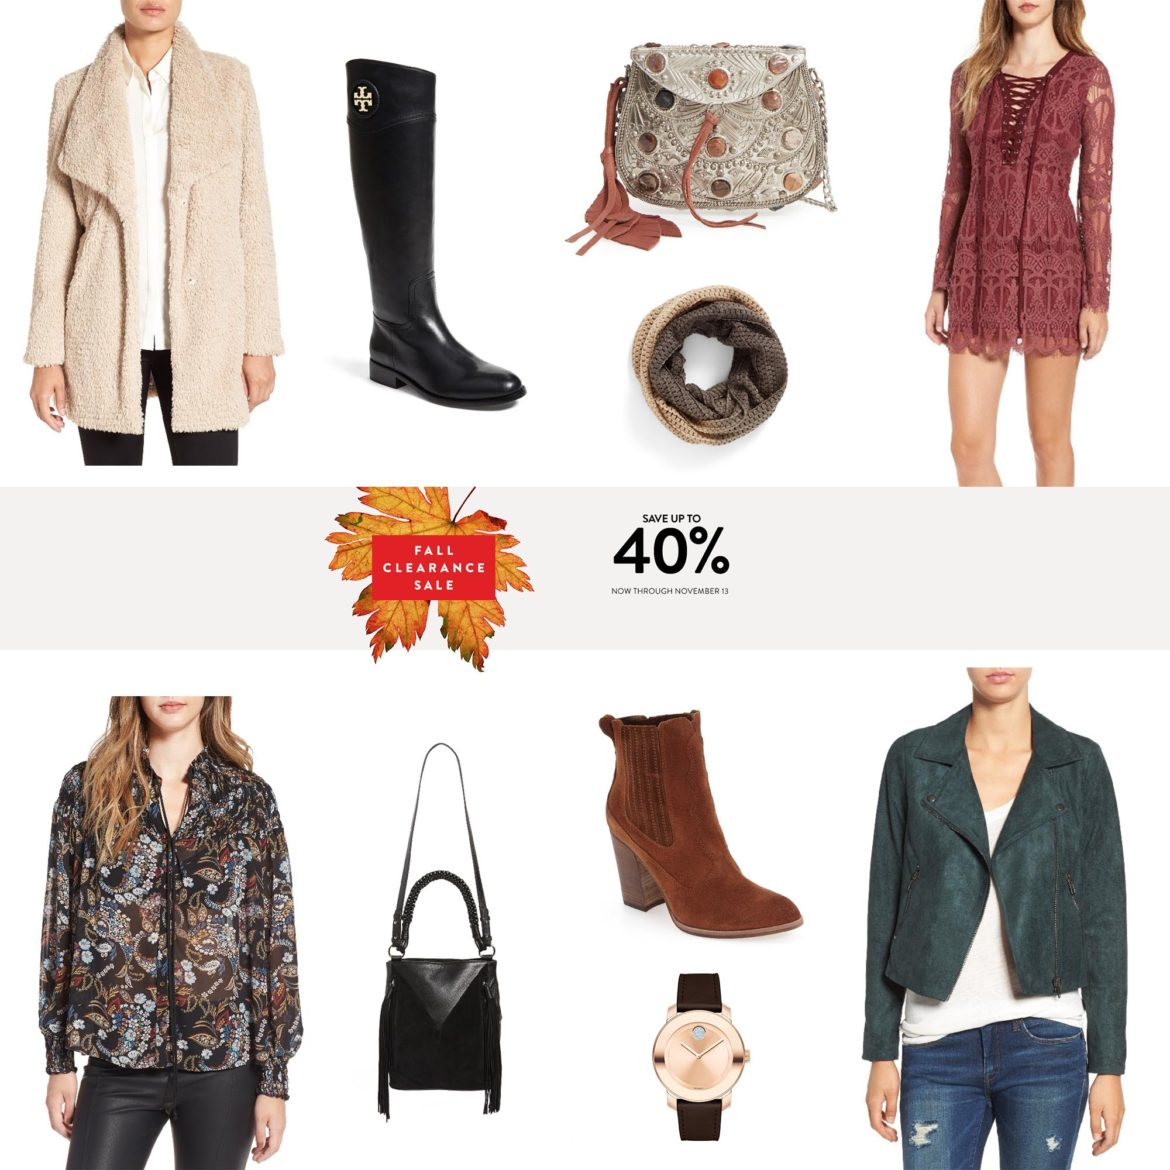 Fashion blogger The Trendy Tomboy's Nordstrom Clearance Sale Picks